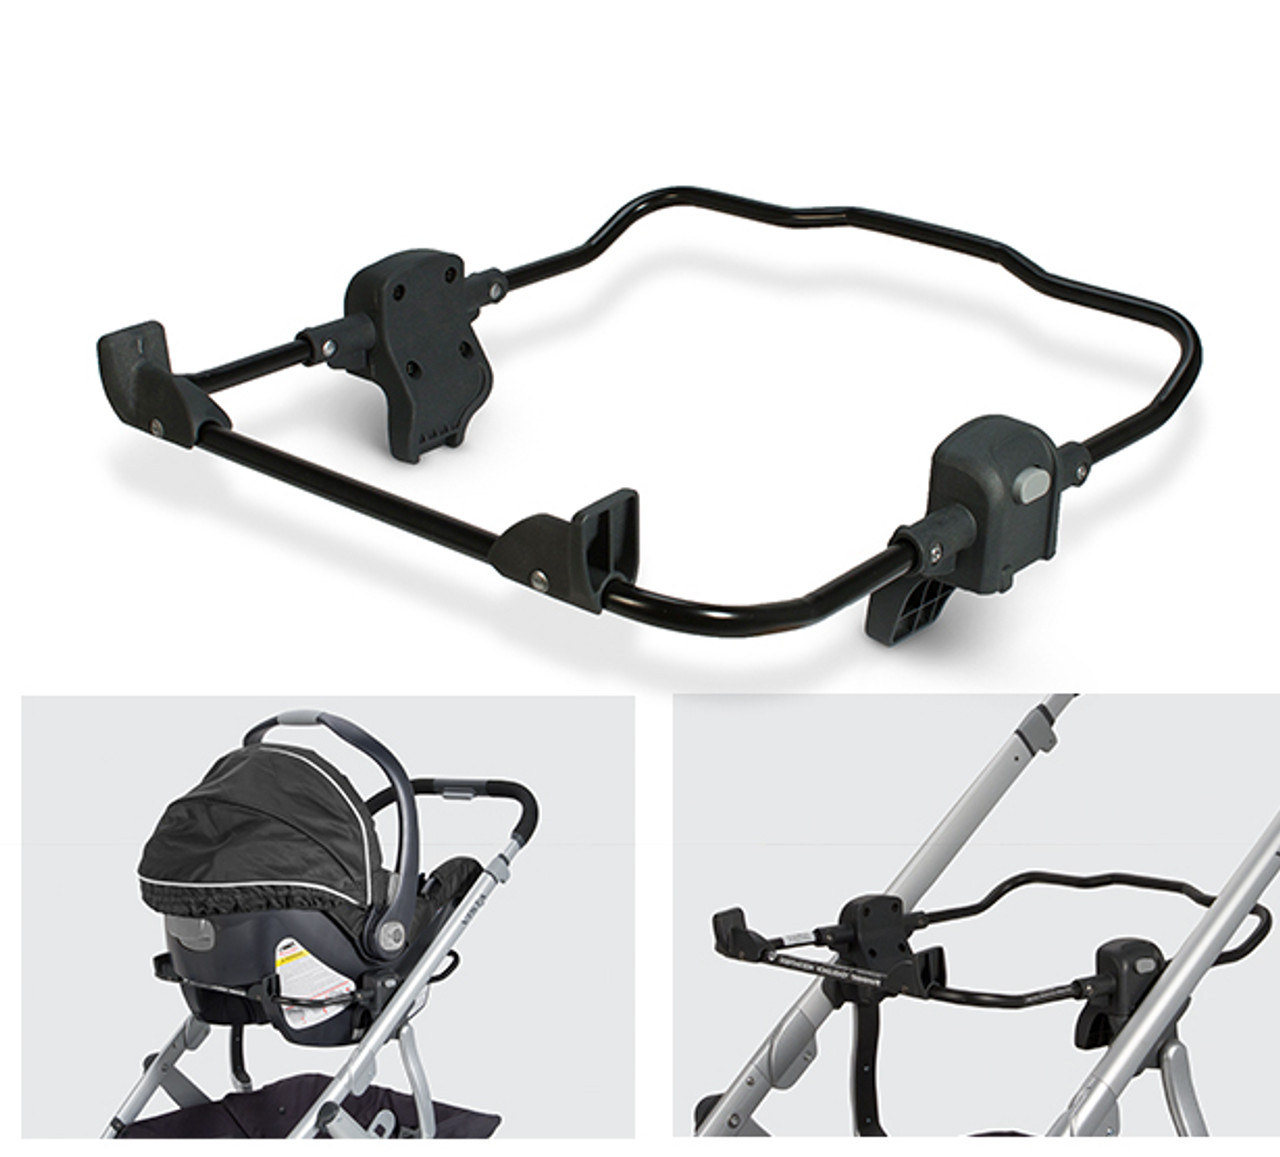 ChiccoR Infant Car Seat Adapter For CRUZ And VISTA